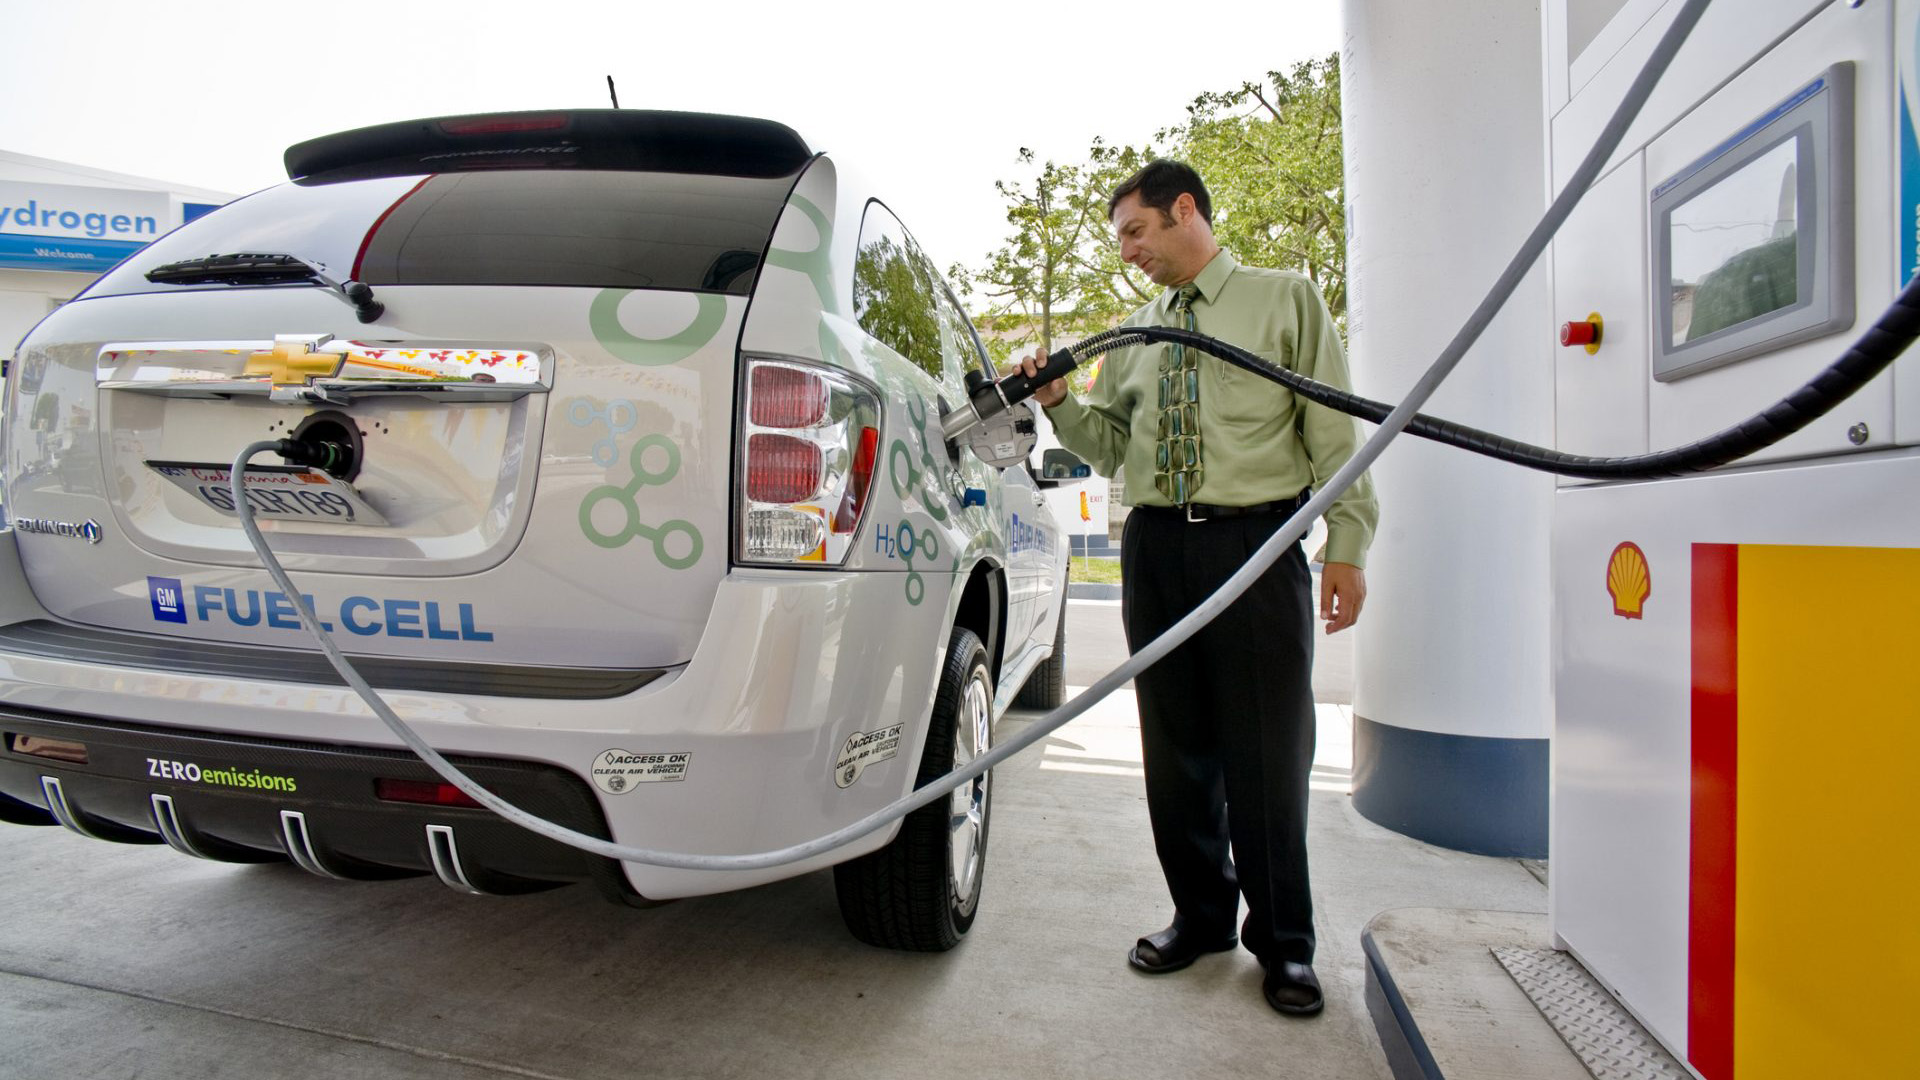 Energy Explorer: Hydrogen and Fuel Cells - Consumer Energy